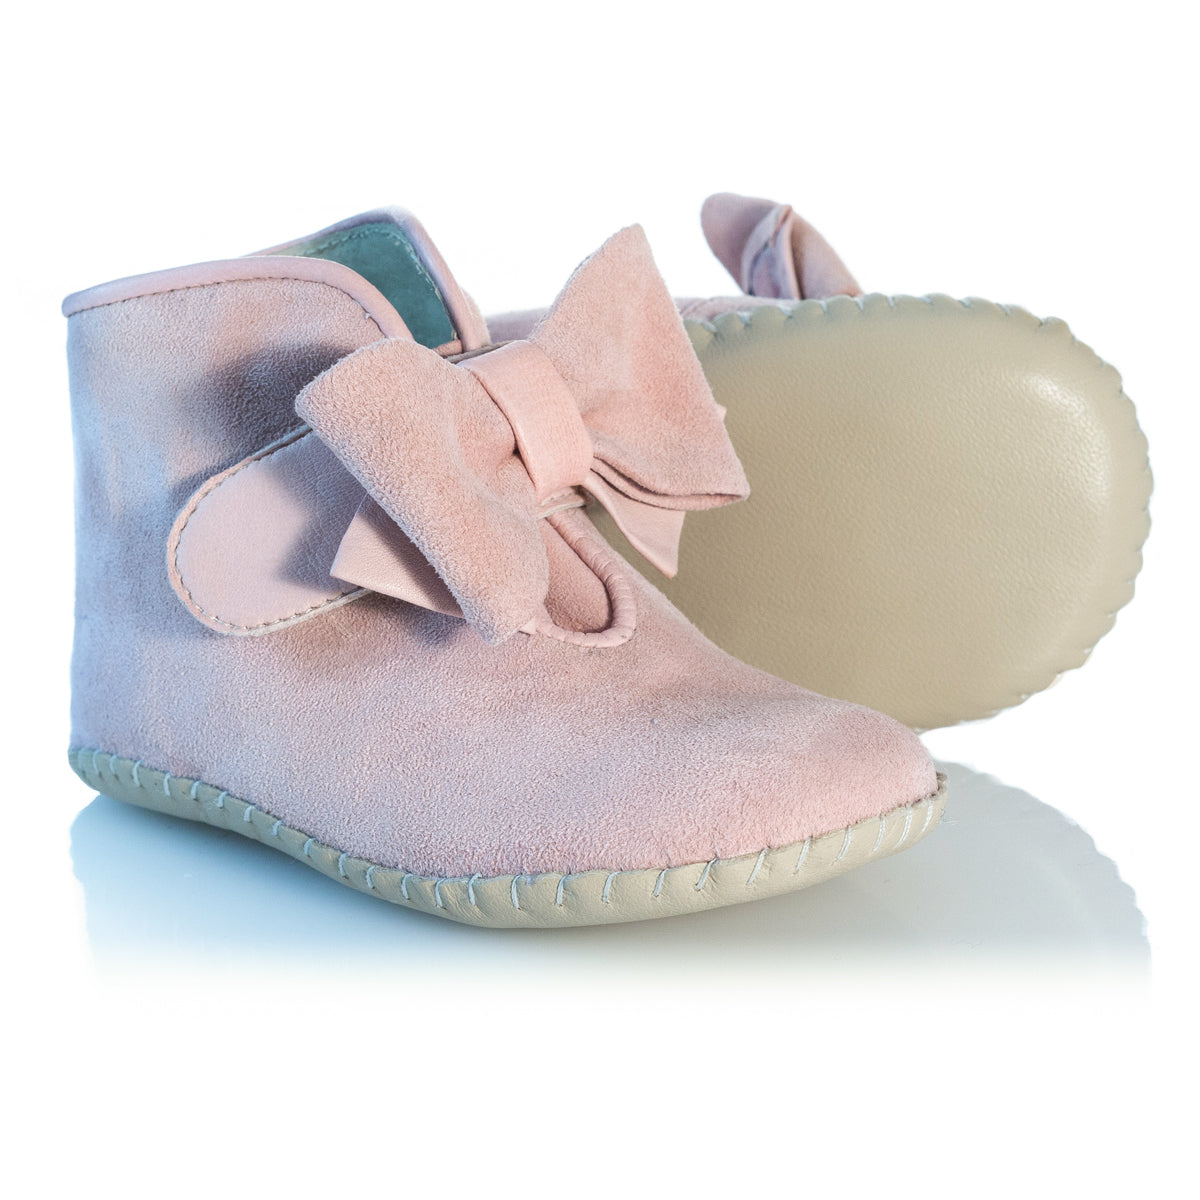 Vibys-Baby-Shoes-Puppy-Paws-Bow-Topped-Pink-sole-view